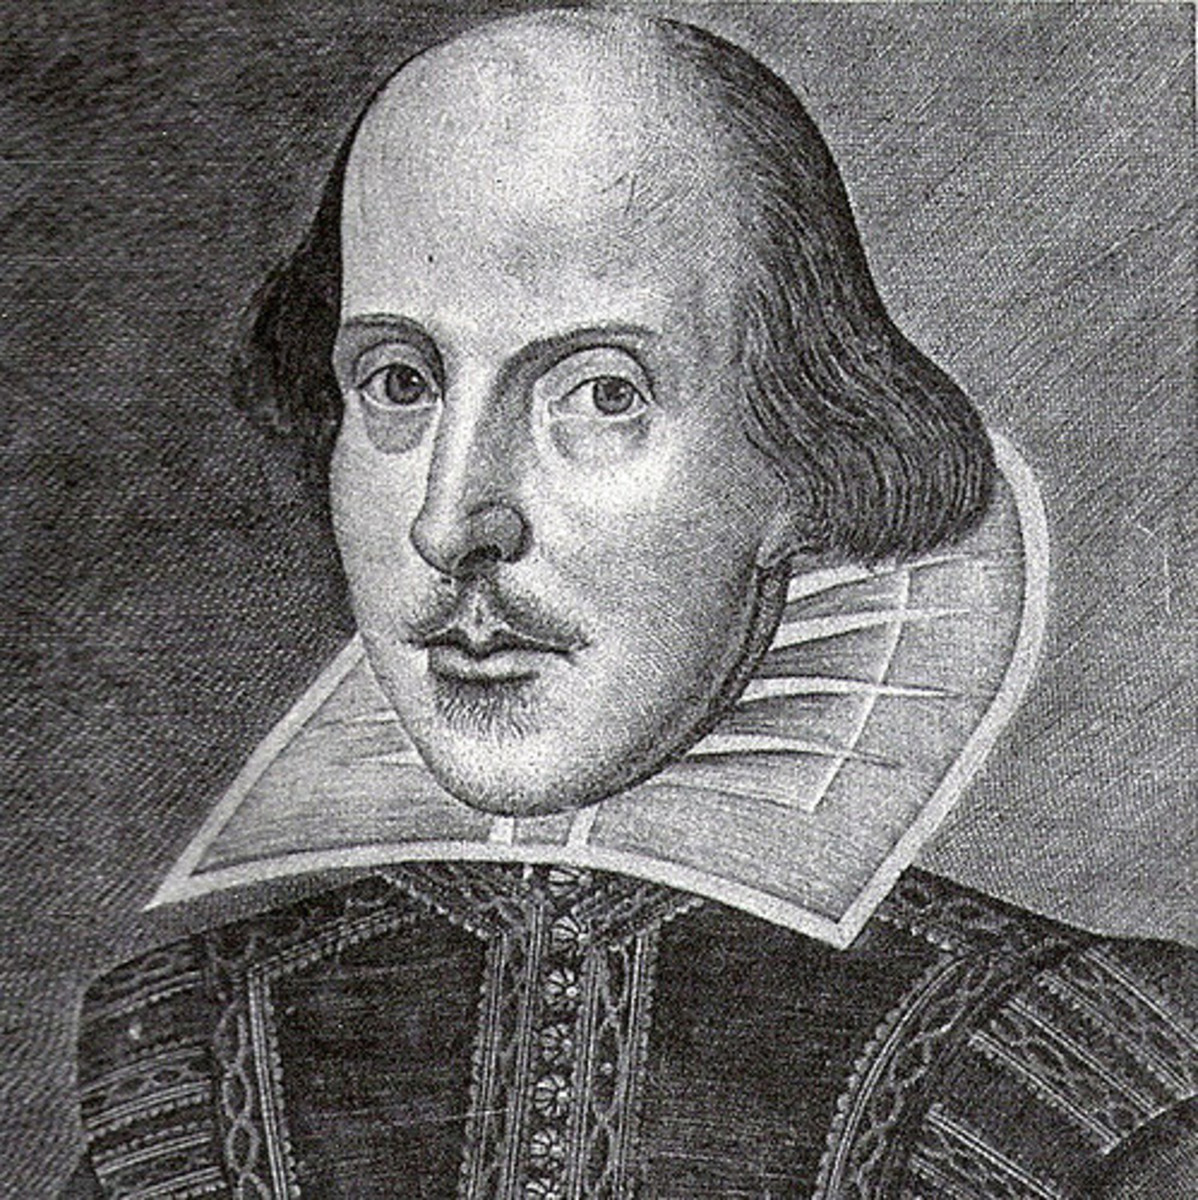 William Shakespeare, 1564-1616.